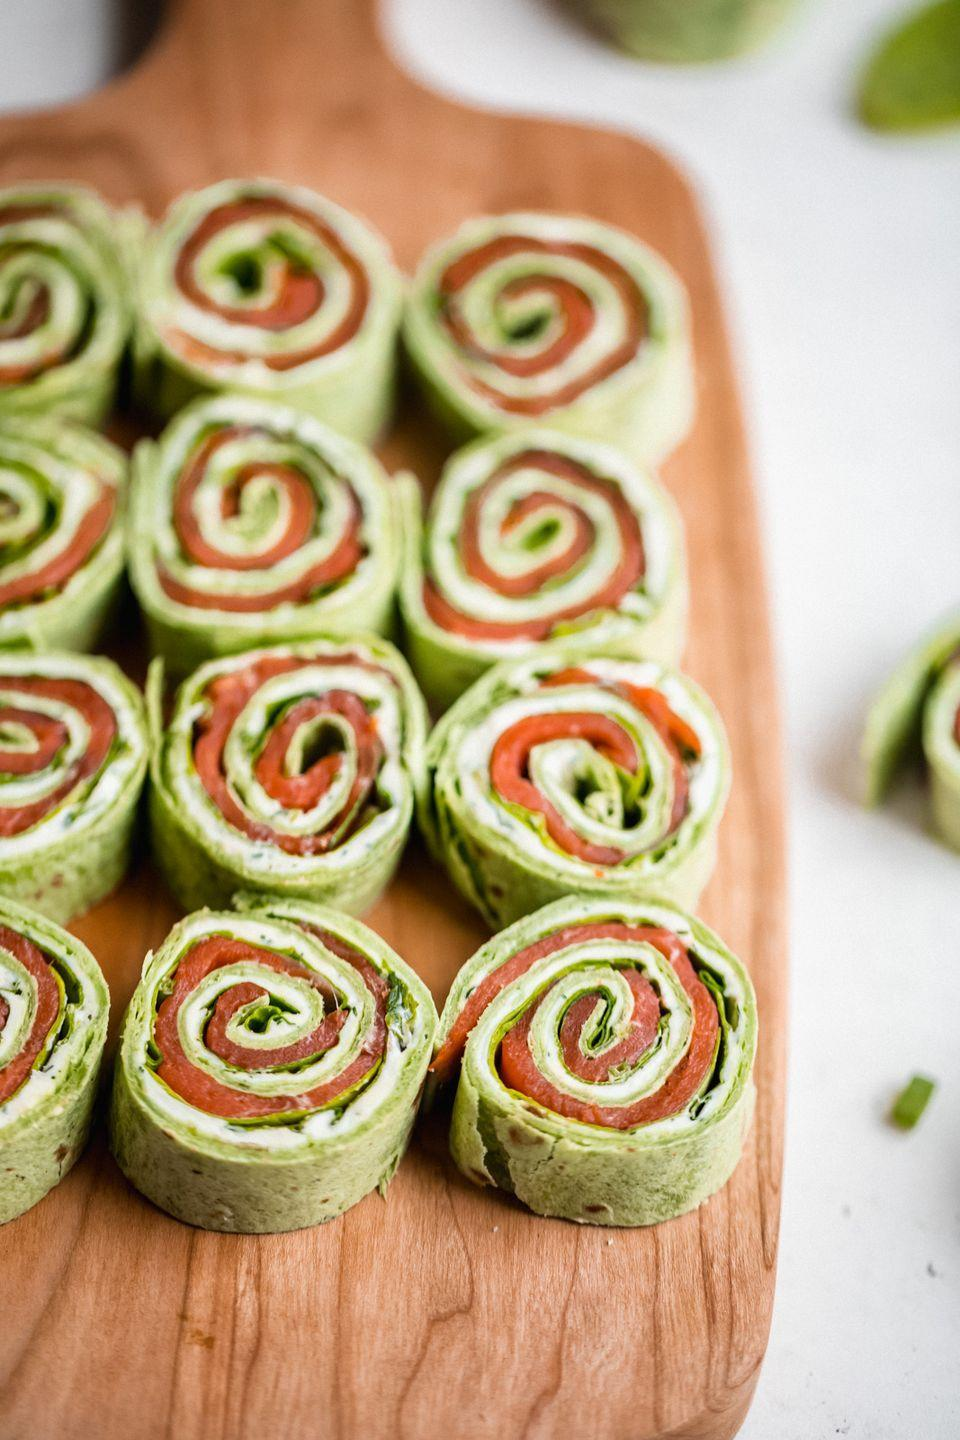 "<p>You might want to make extra, because these simple, delicious pinwheels will fly right off the plate.</p><p><strong>Get the recipe at <a href=""https://www.ambitiouskitchen.com/smoked-salmon-pinwheels/"" rel=""nofollow noopener"" target=""_blank"" data-ylk=""slk:Ambitious Kitchen"" class=""link rapid-noclick-resp"">Ambitious Kitchen</a>.</strong></p><p><strong><a class=""link rapid-noclick-resp"" href=""https://www.amazon.com/Mercer-Culinary-M23210-Millennia-10-Inch/dp/B000PS1HS6/?tag=syn-yahoo-20&ascsubtag=%5Bartid%7C10063.g.35089489%5Bsrc%7Cyahoo-us"" rel=""nofollow noopener"" target=""_blank"" data-ylk=""slk:SHOP SERRATED KNIVES"">SHOP SERRATED KNIVES</a><br></strong></p>"